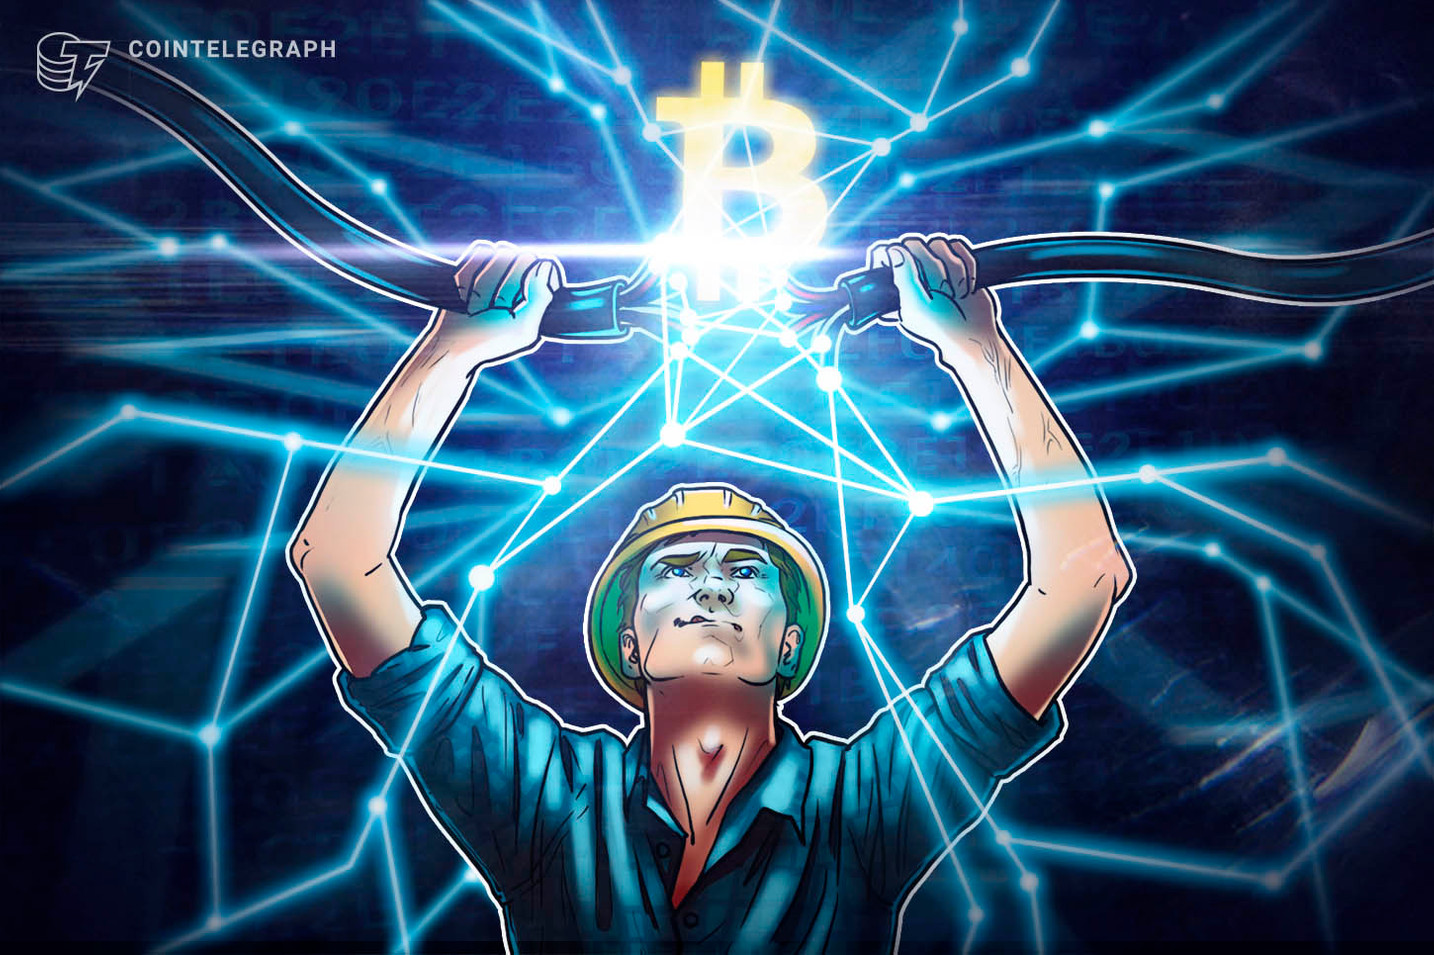 Argo Blockchain Defies COVID-19, Mines Record Levels of Bitcoin in Q1 2020